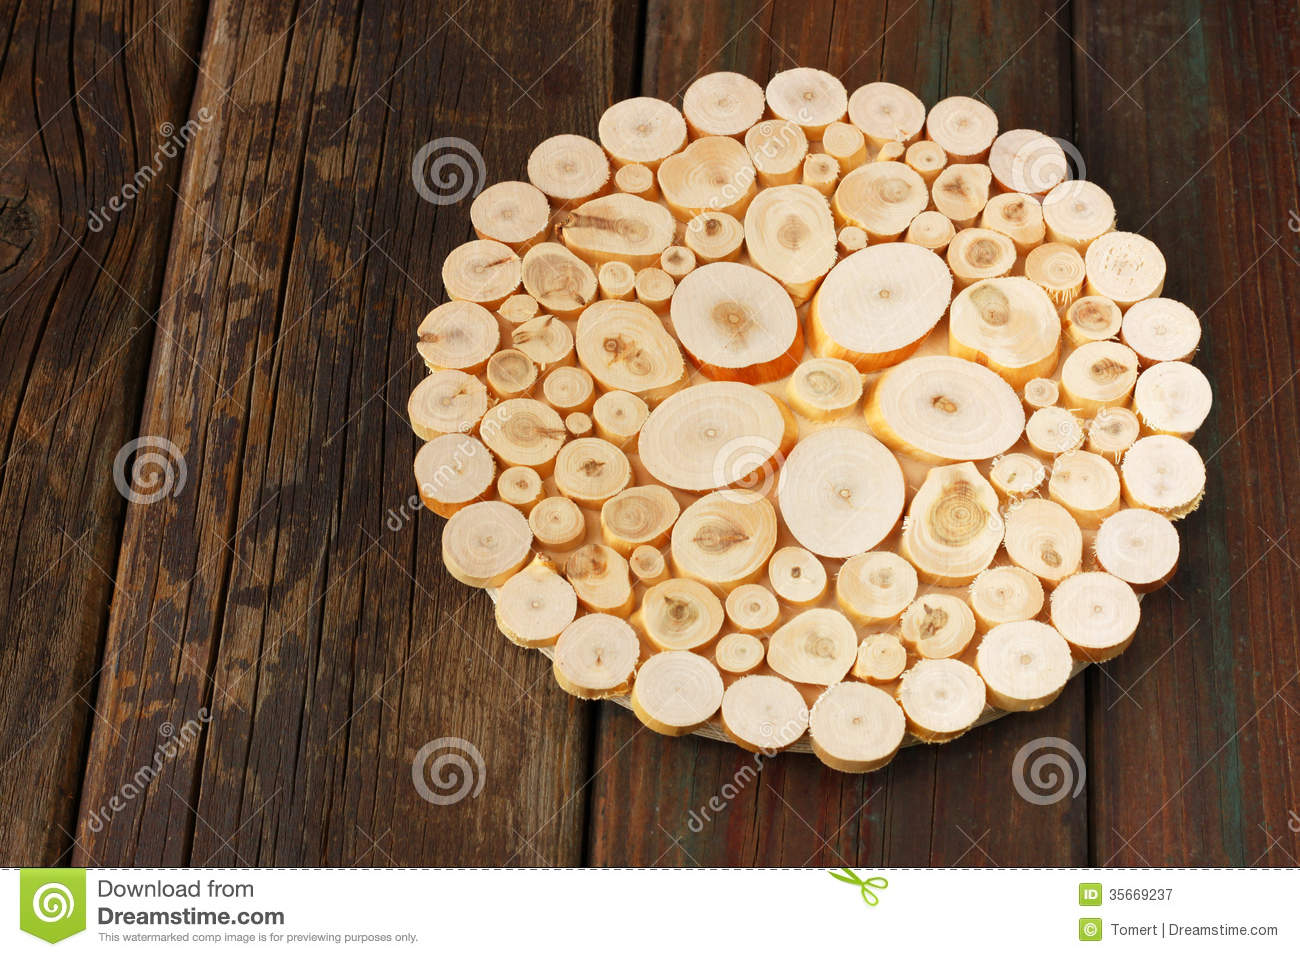 Recycle Concept Decorative Recycled Wood Slices On Wooden